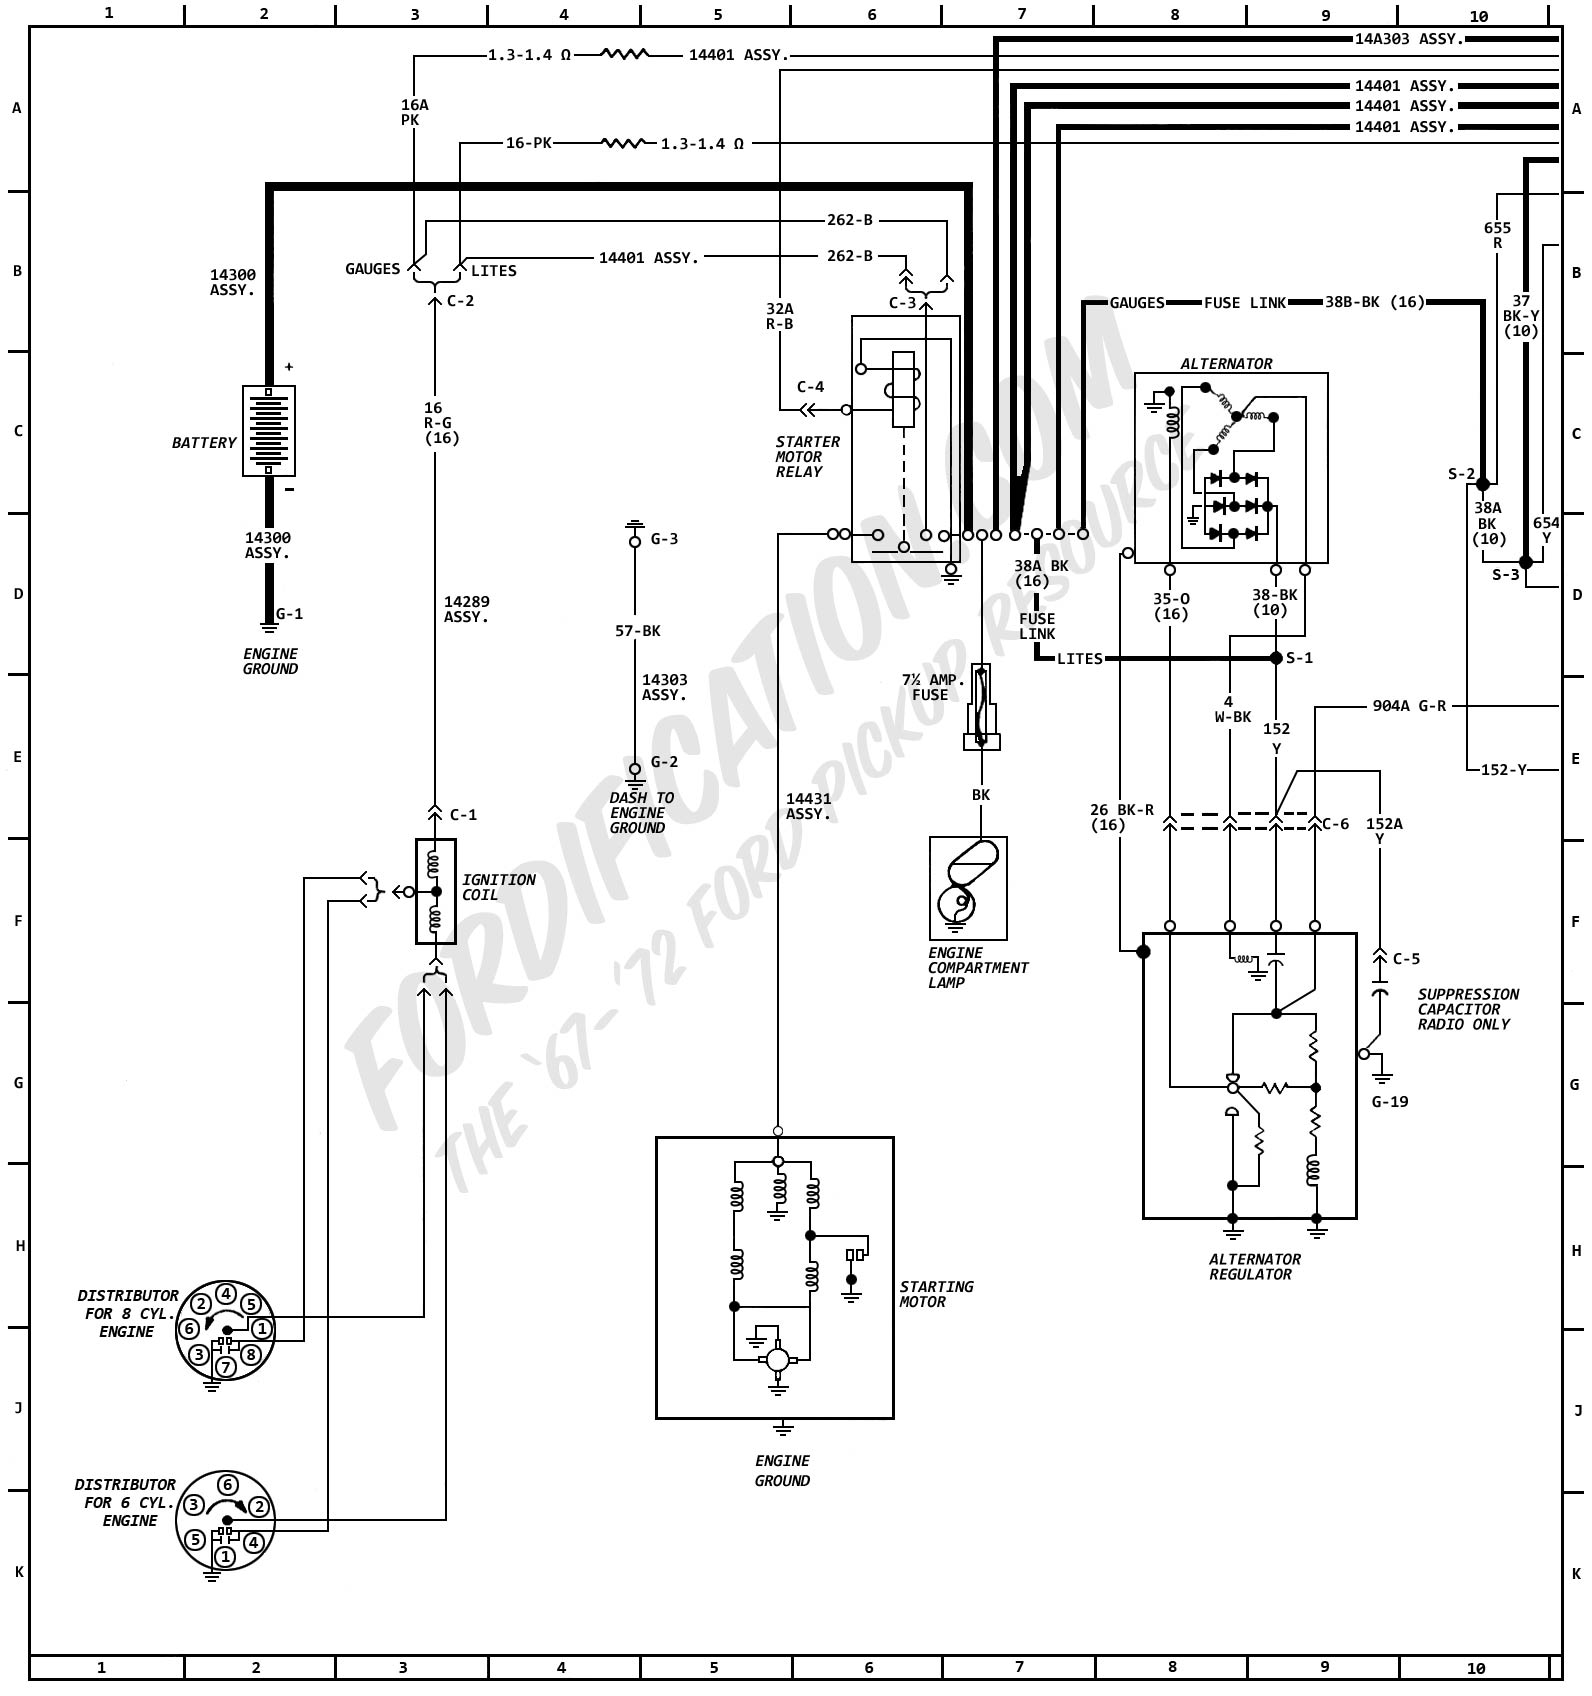 1972MasterWiring_01 1972 ford truck wiring diagrams fordification com F100 Wiring Diagram at mr168.co